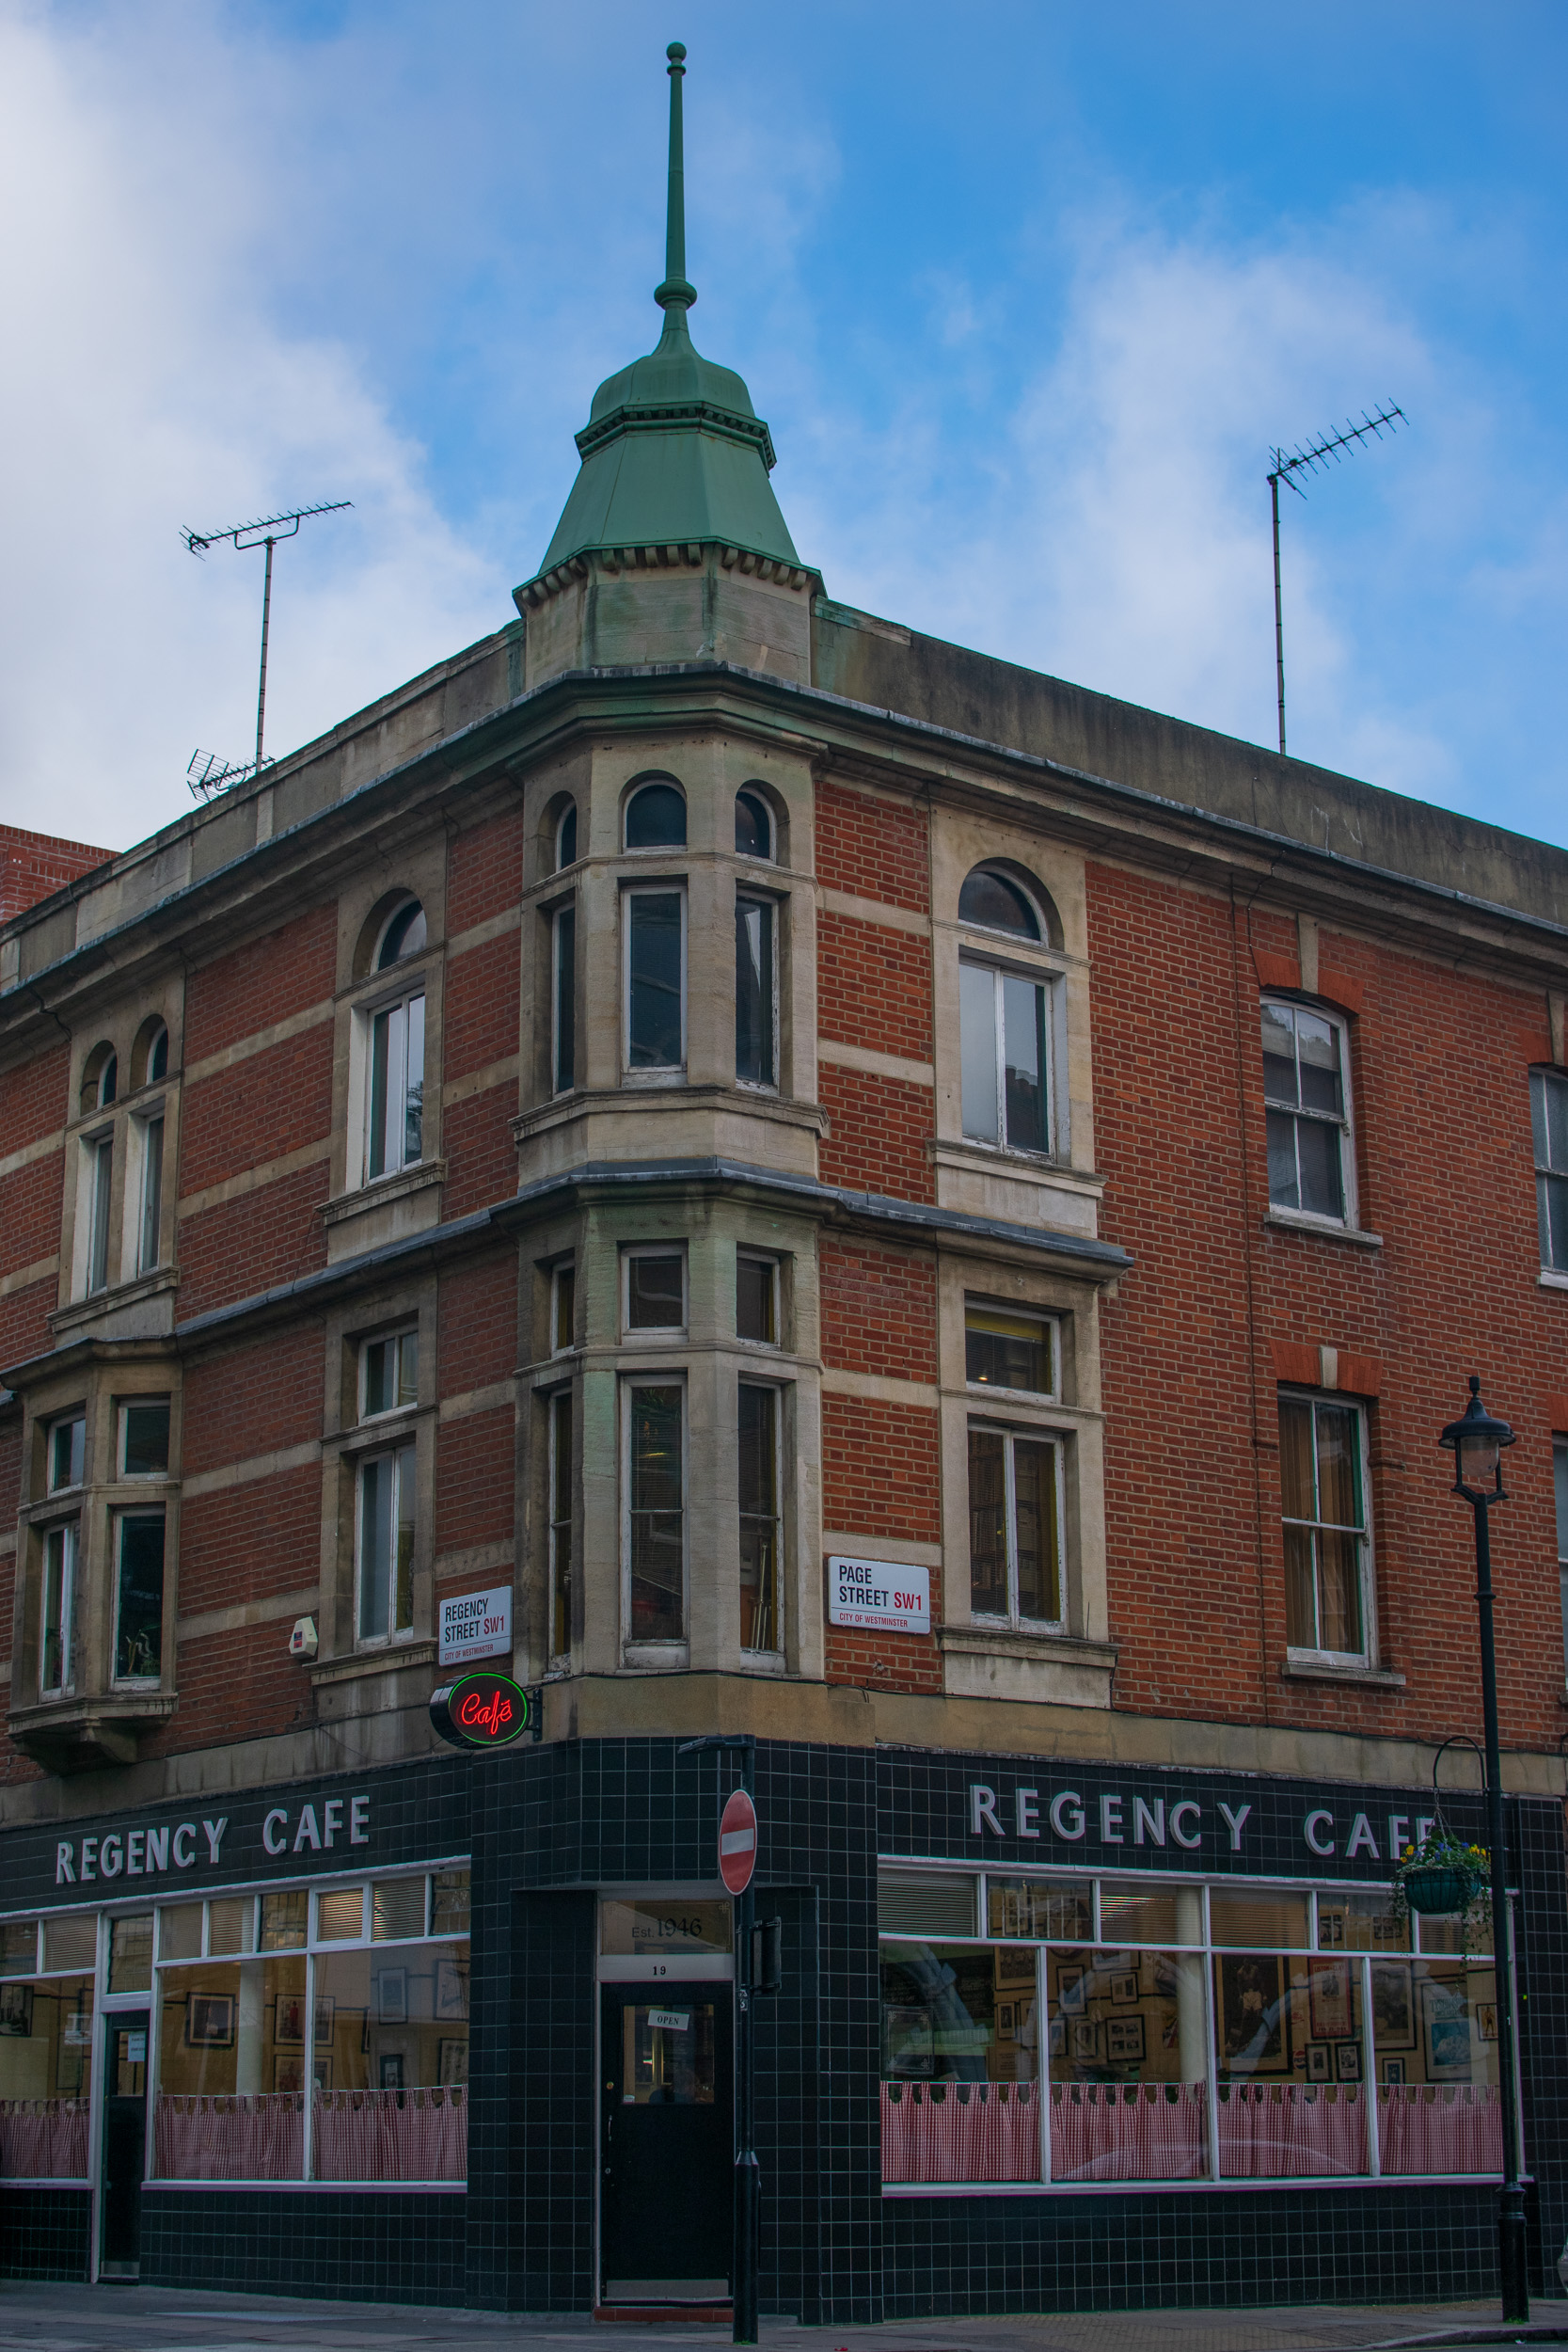 Regency Cafe London